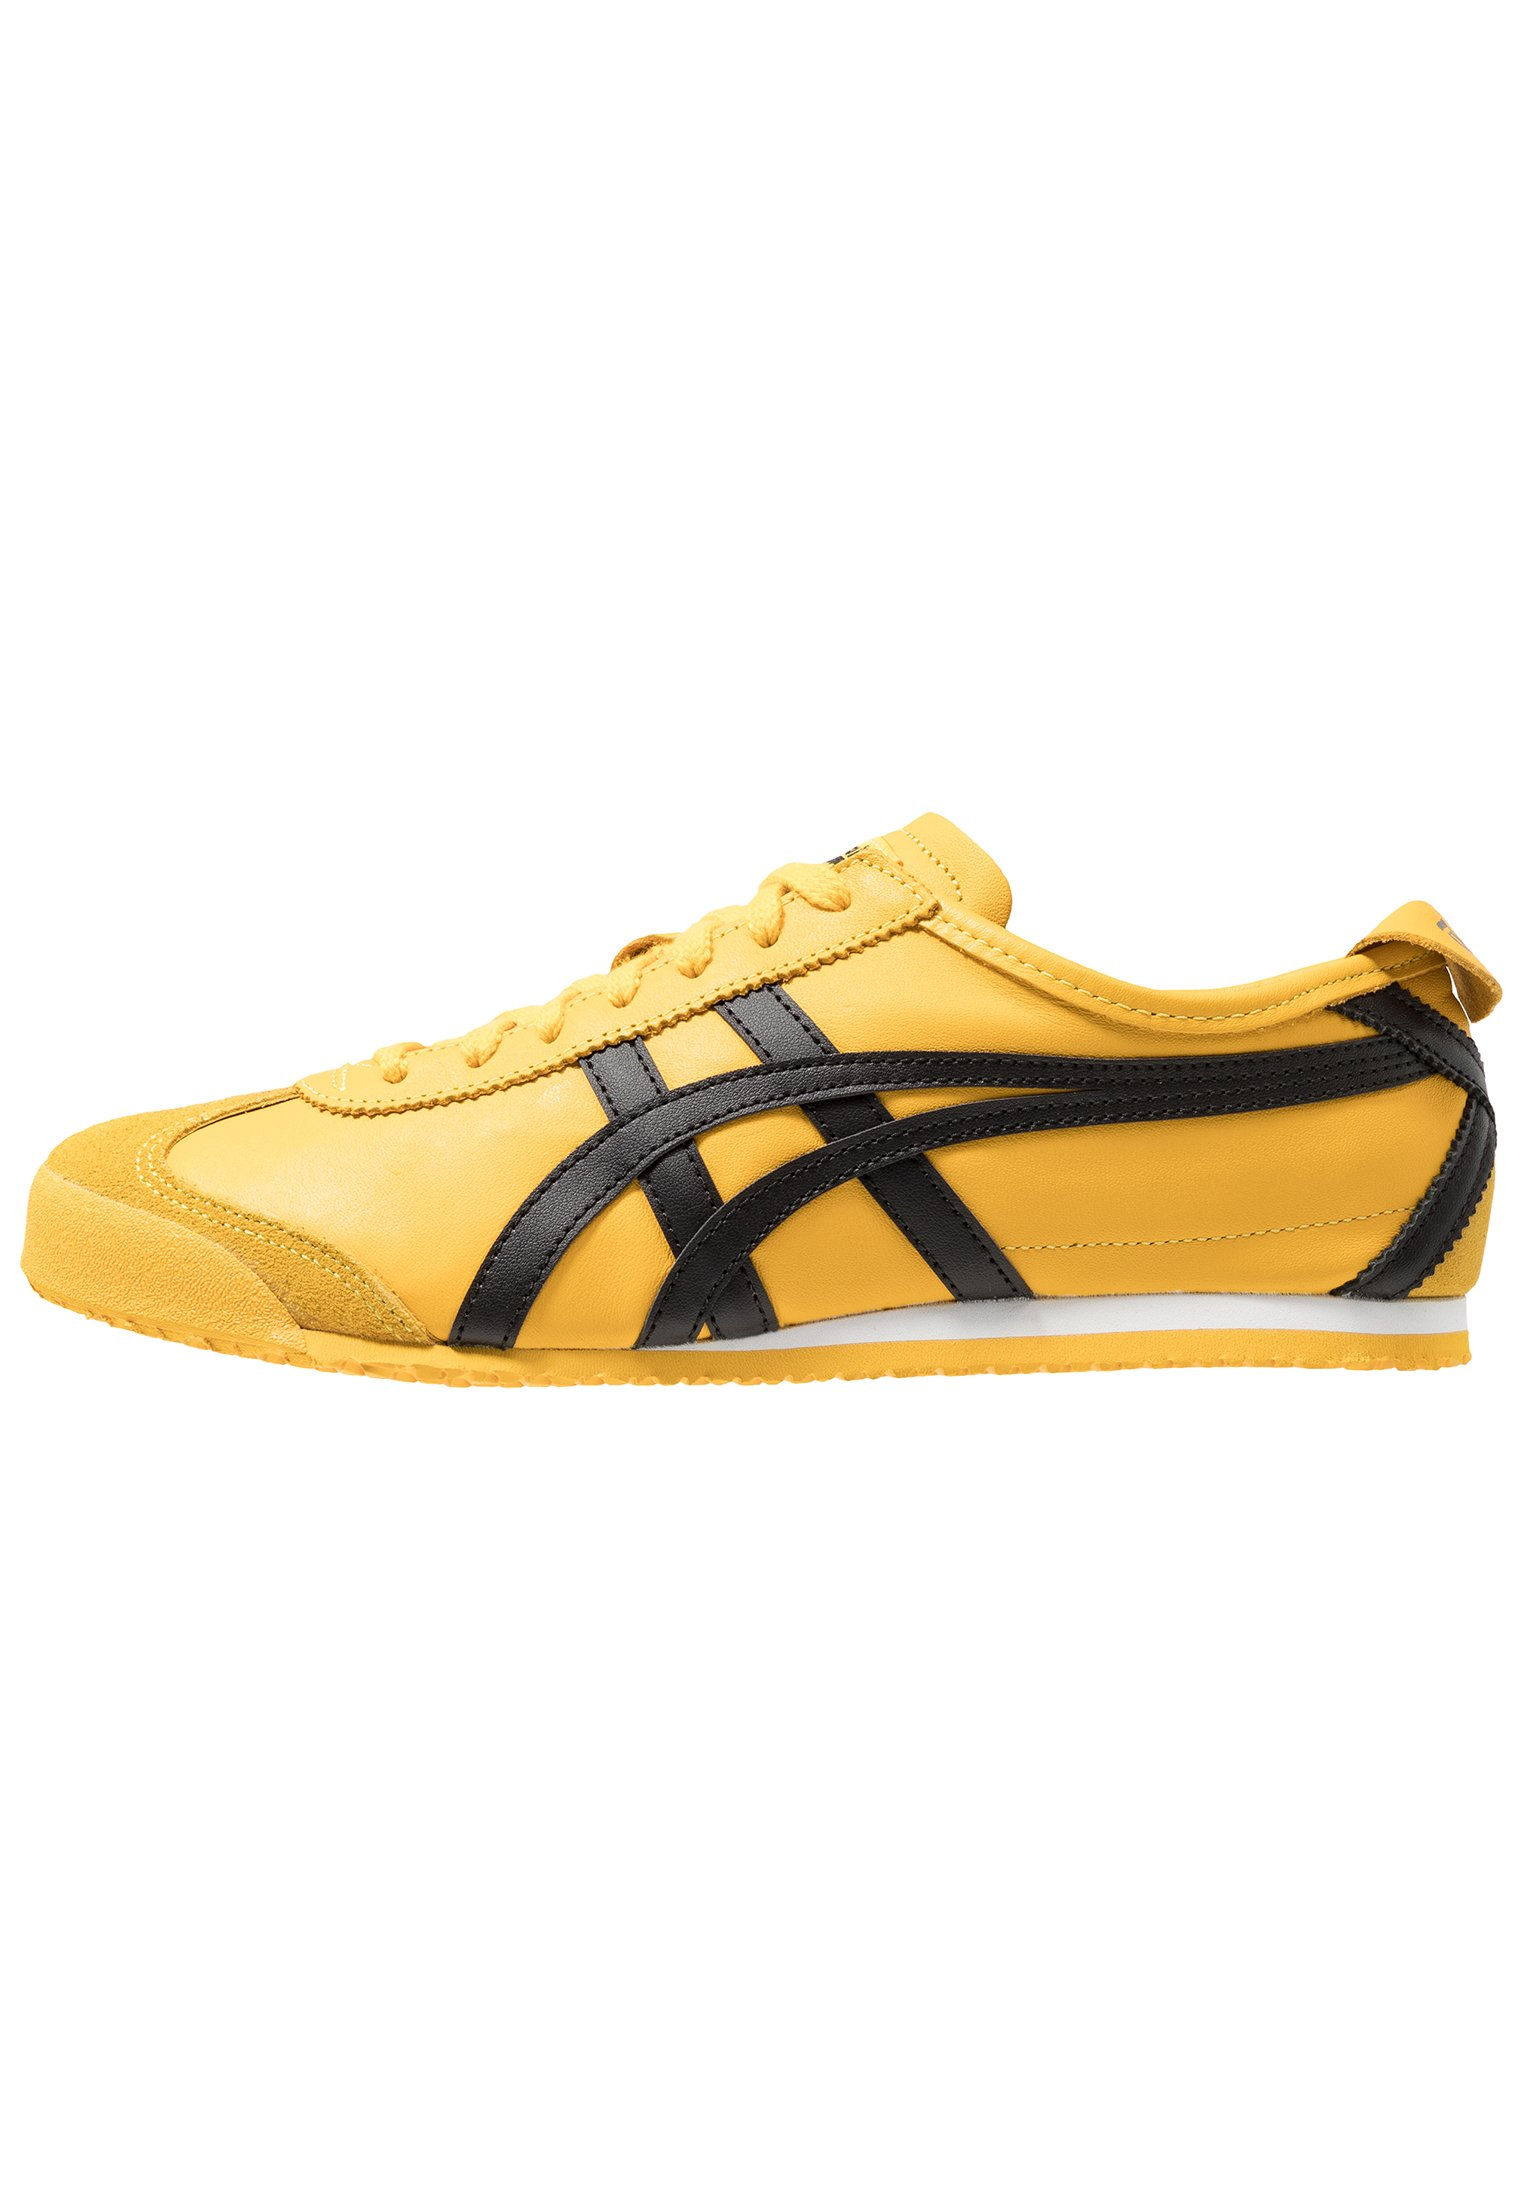 onitsuka tiger mexico 66 yellow zalando jersey colombiano